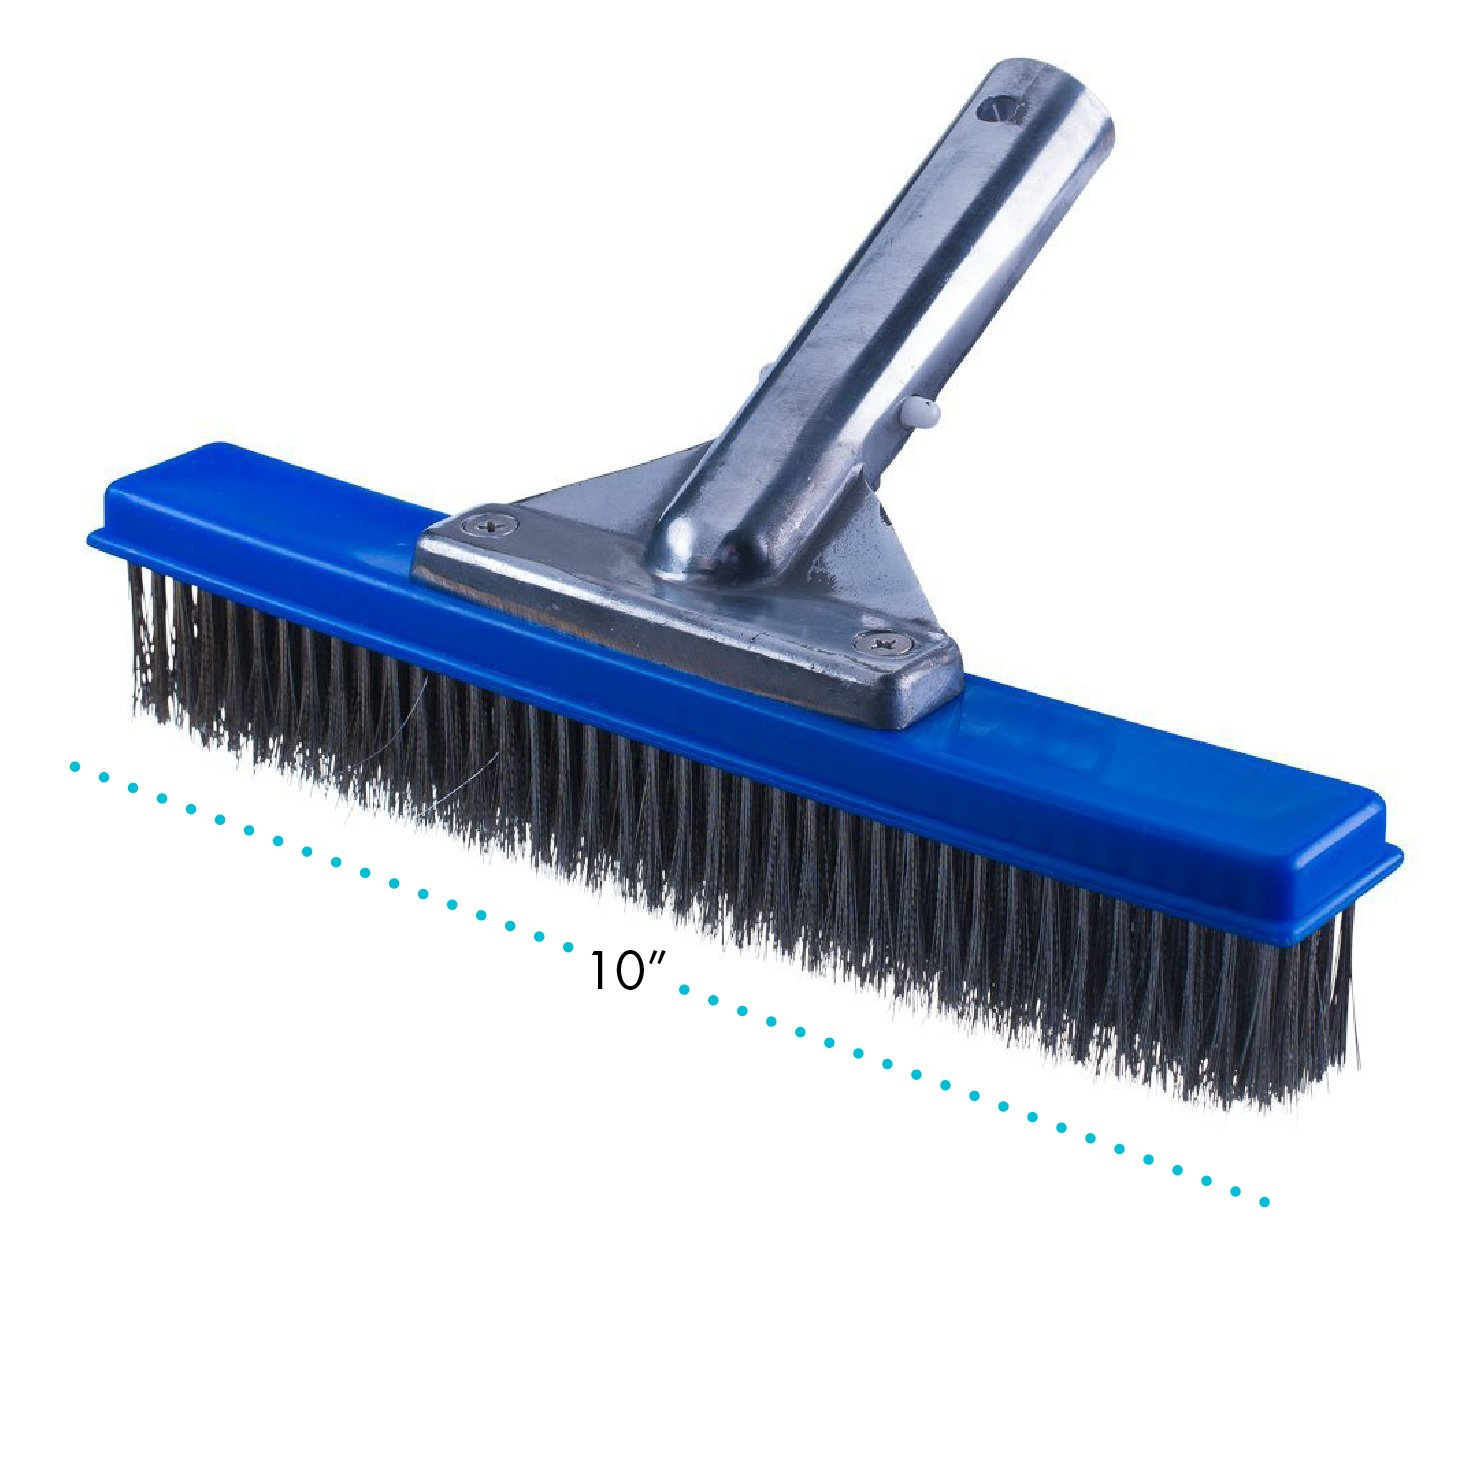 Milliard 10'' Wide Heavy Duty Wire Pool Algae Brush, Designed Concrete Gunite Pools Walkways, Great on Extremely Tough Stains